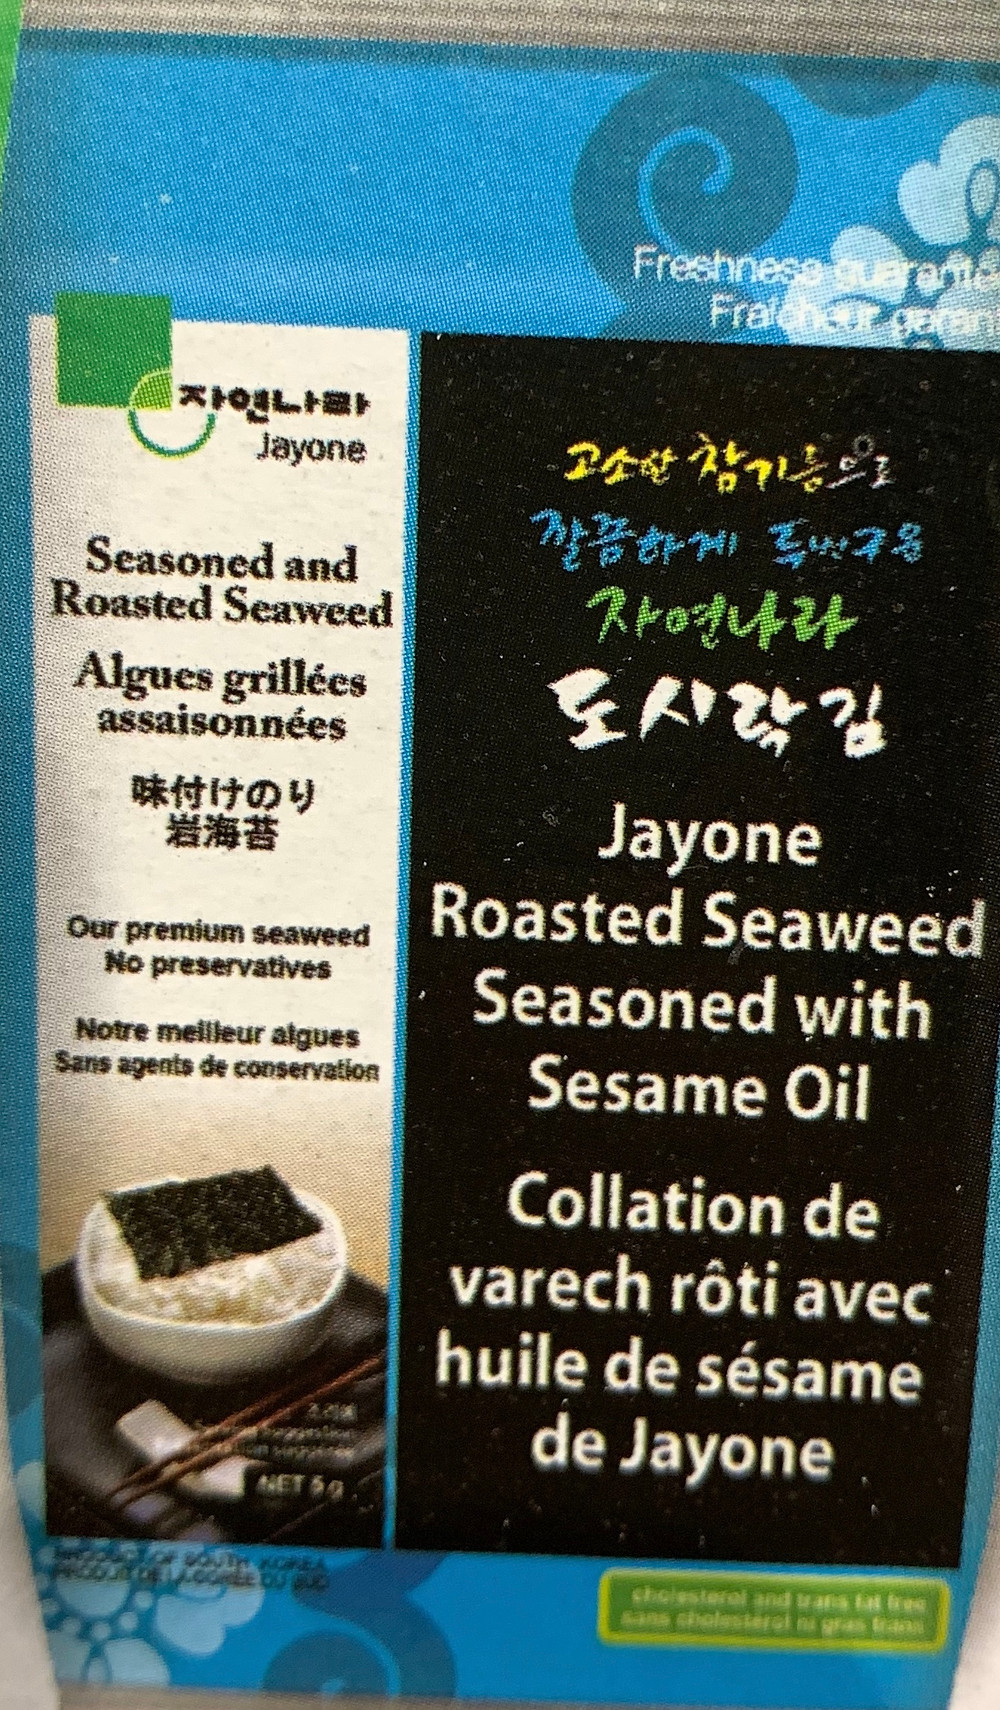 Costco Jayone Seasoned and Roasted Seaweed Pack